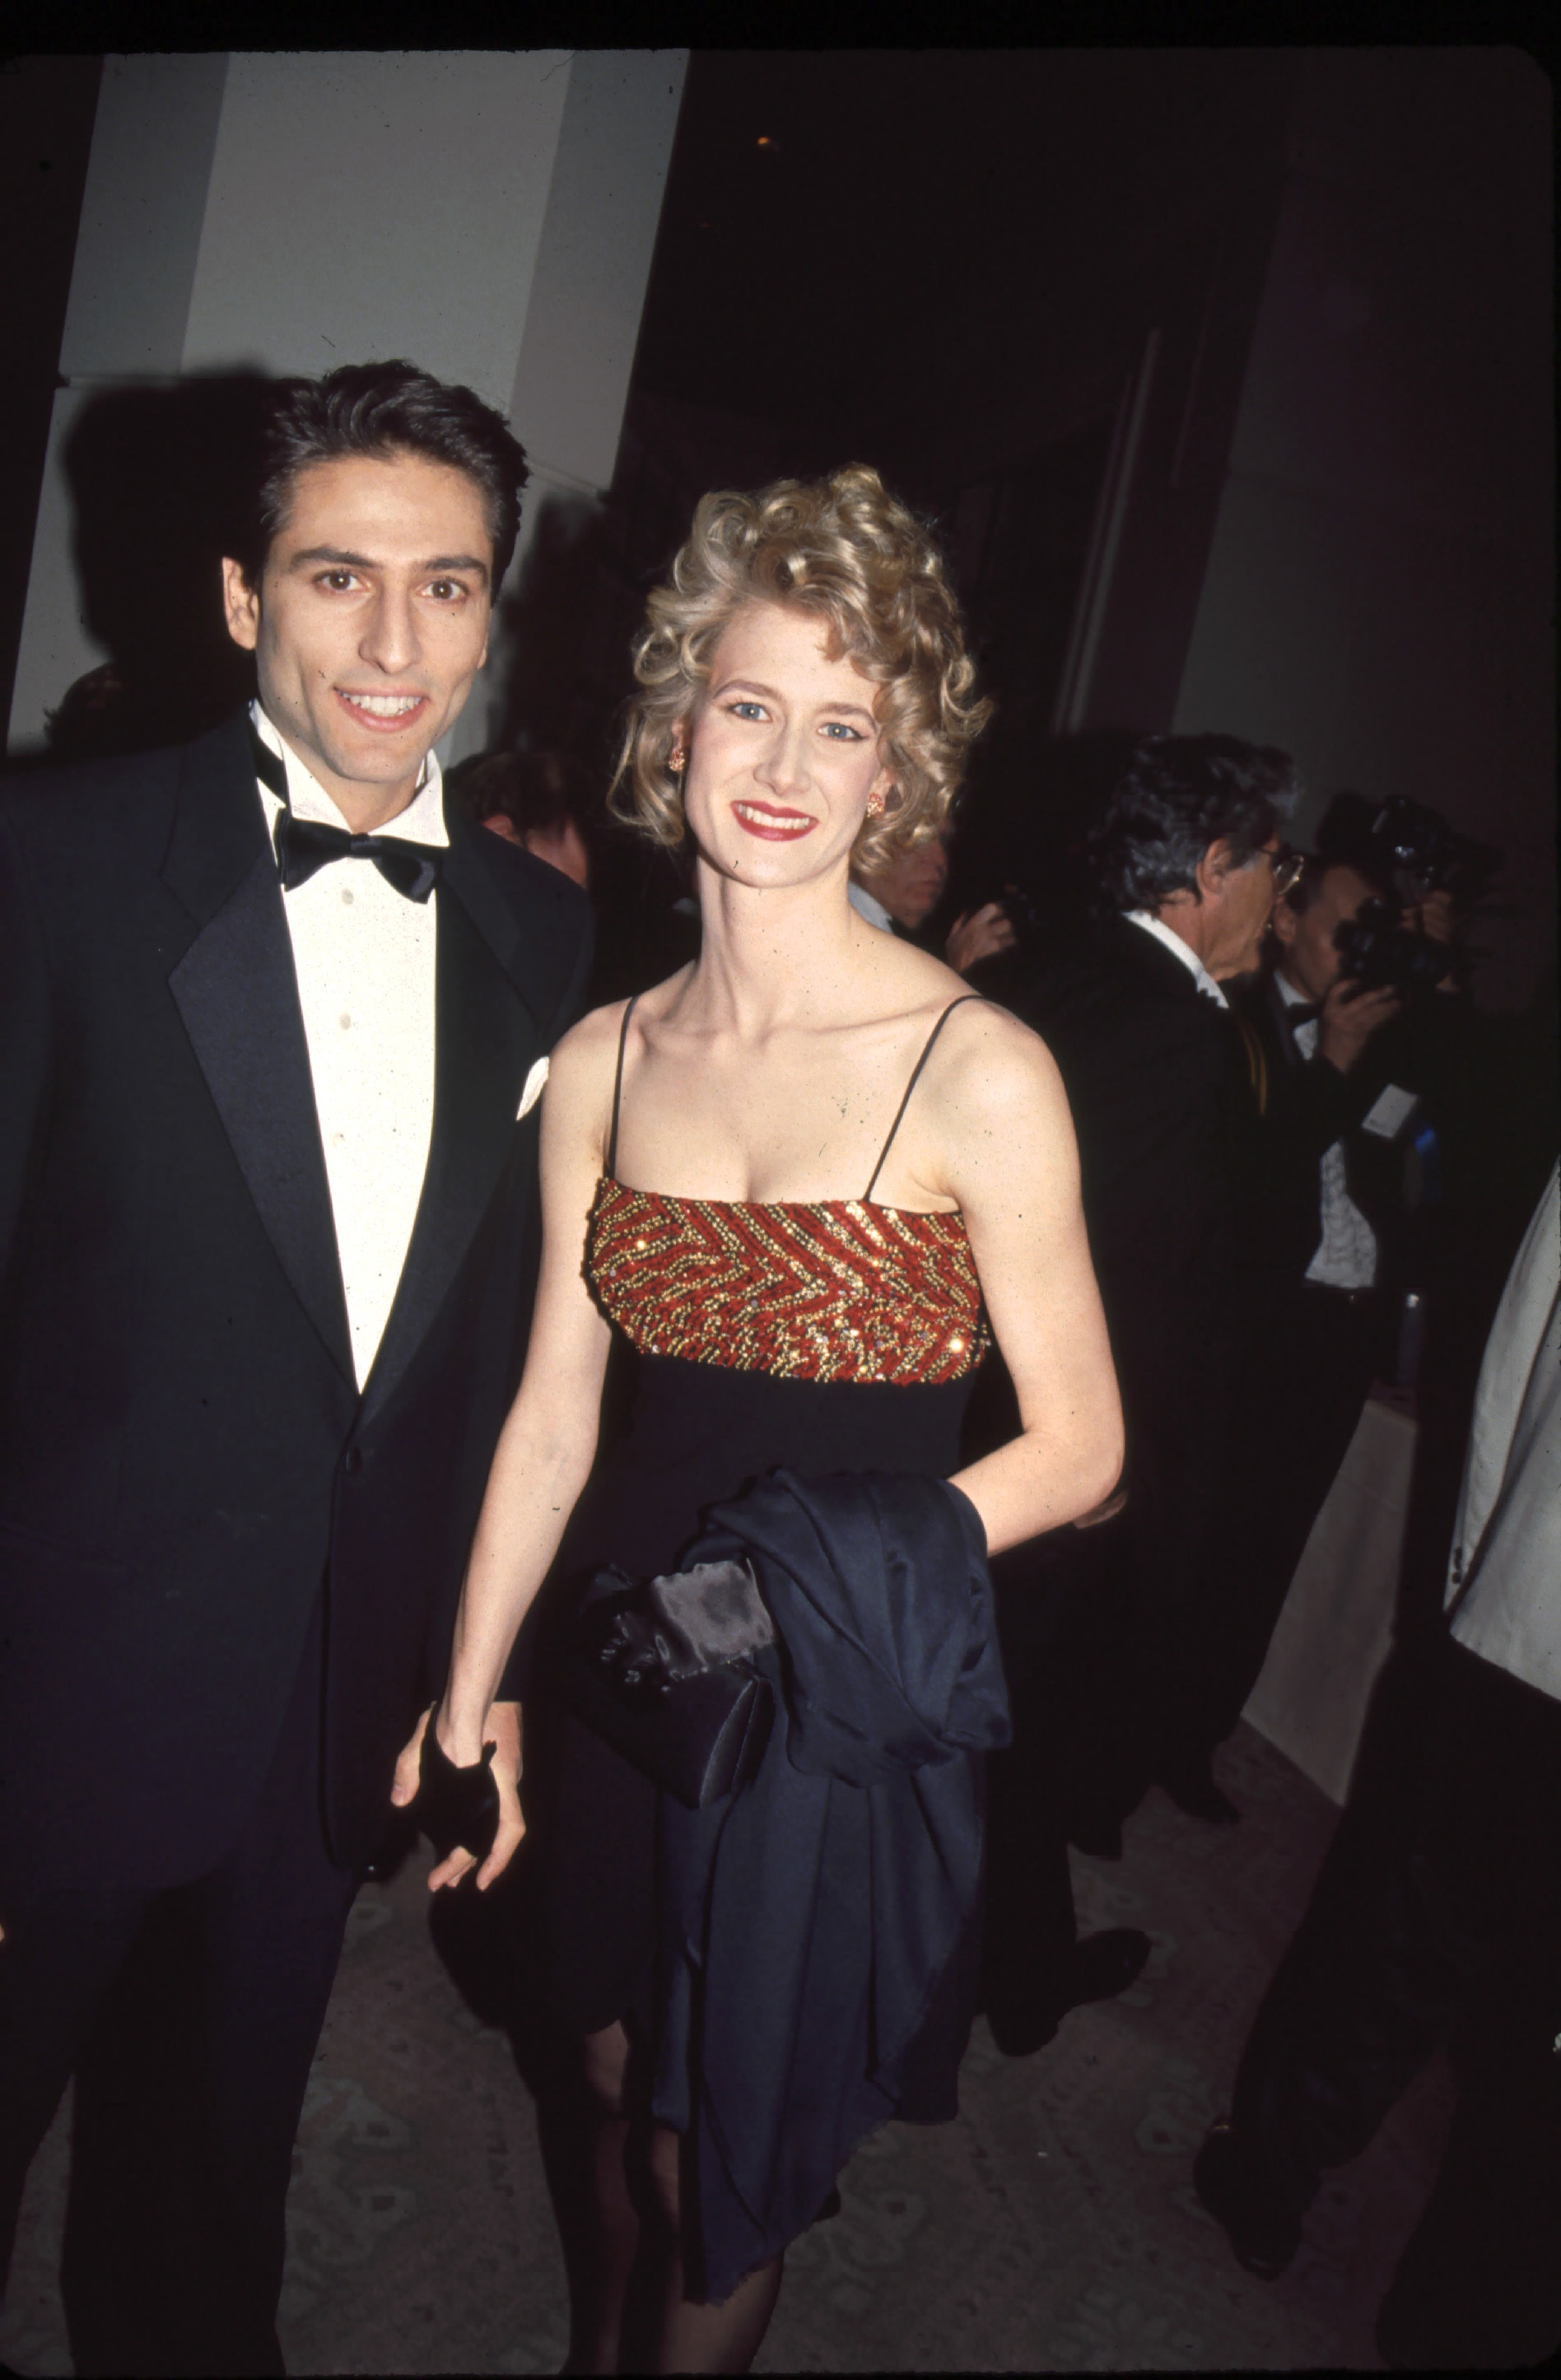 Vincent Spano and Laura Dern1992 Golden Globe Awards January 18, 1992 - Los Angeles, CA . Vincent Spano and Laura Dern . Golden Globe Awards . Photo®Berliner Studio/BEImages